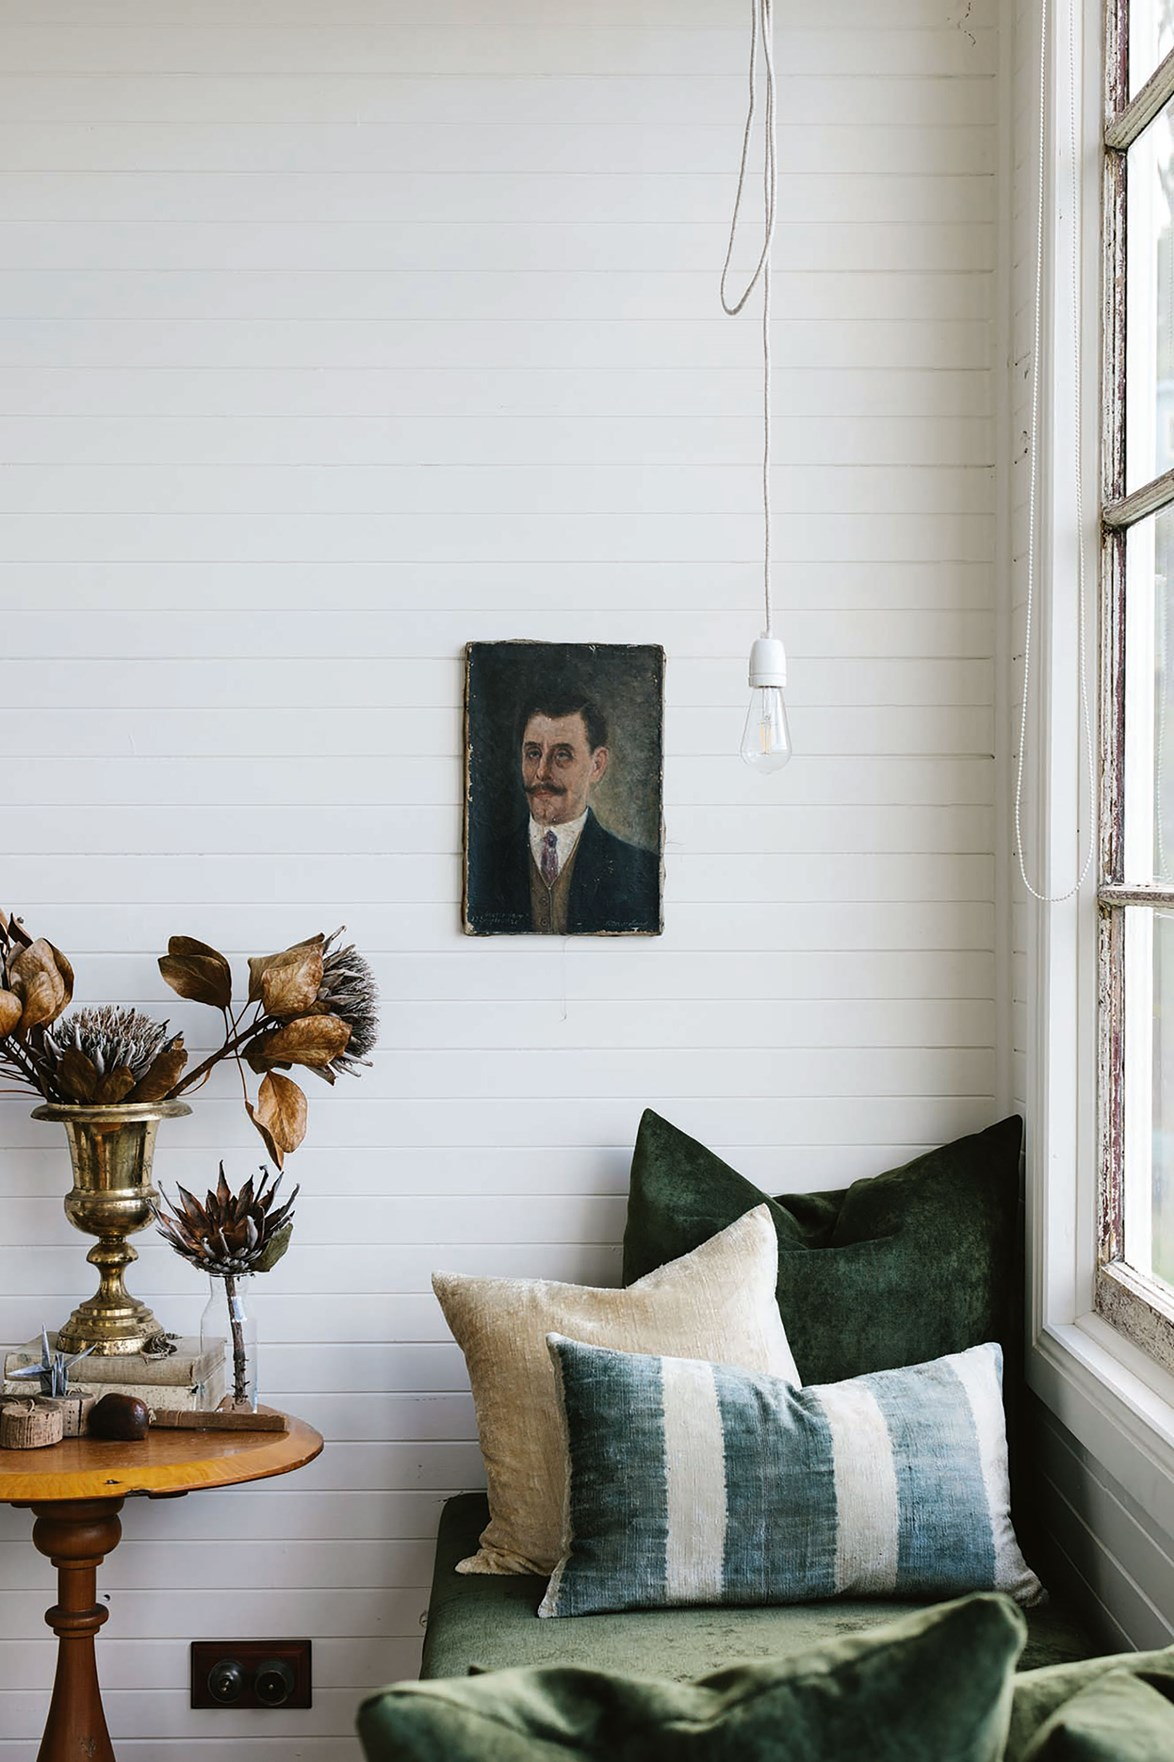 """At [Captains Rest](https://www.homestolove.com.au/tasmania-airbnb-captains-rest-13981